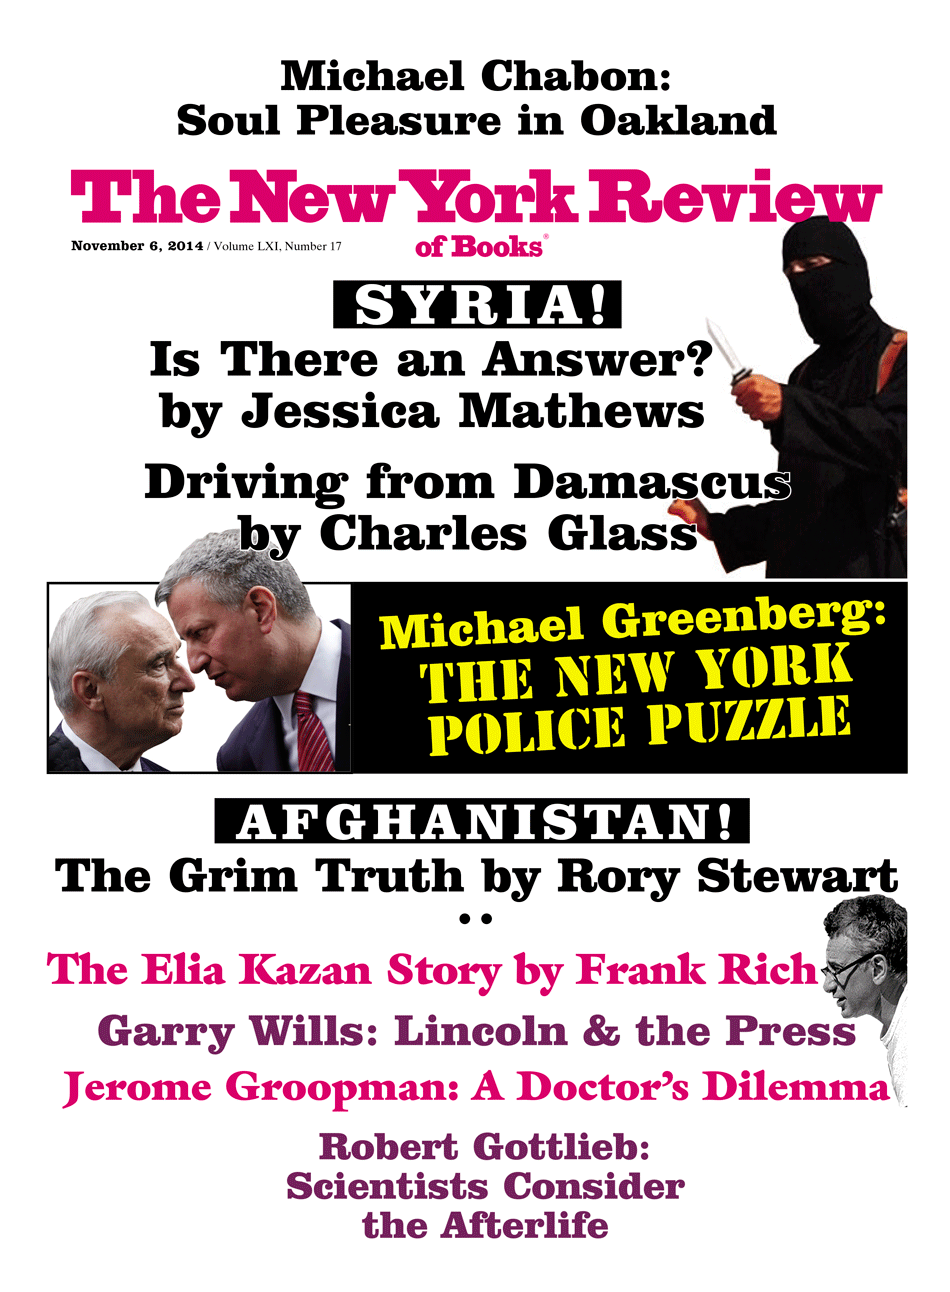 broken windows and the new york police by michael greenberg also in this issue